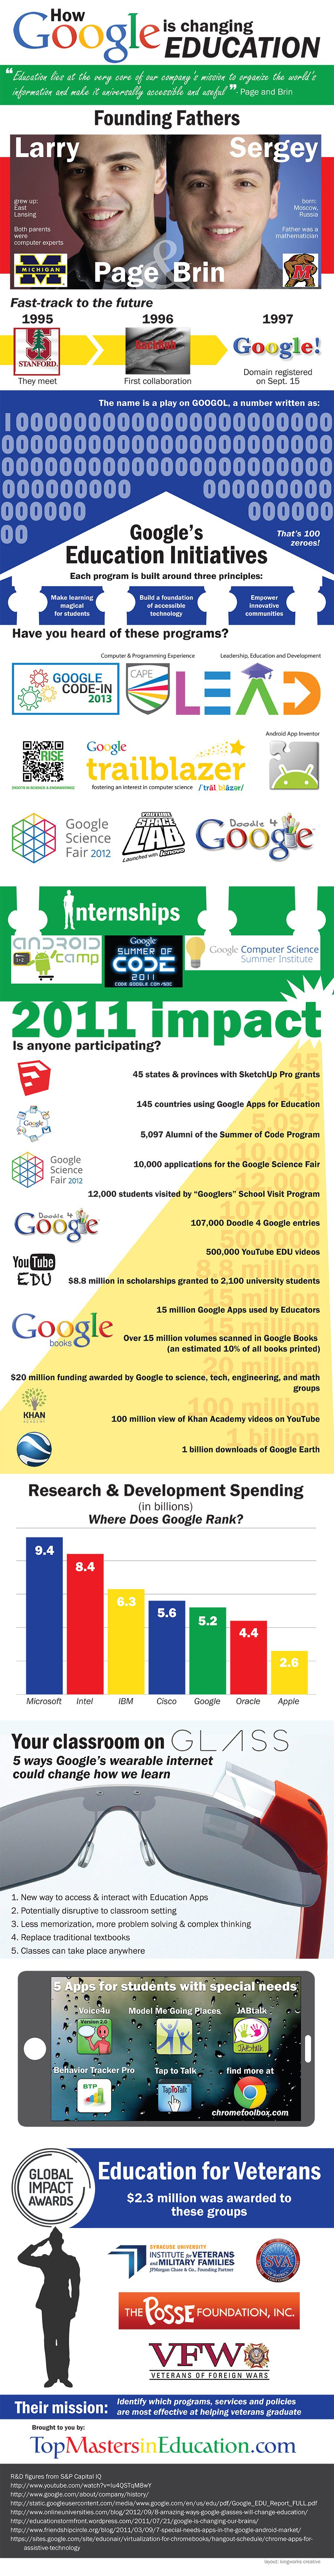 Infographic: Google's impact on Education